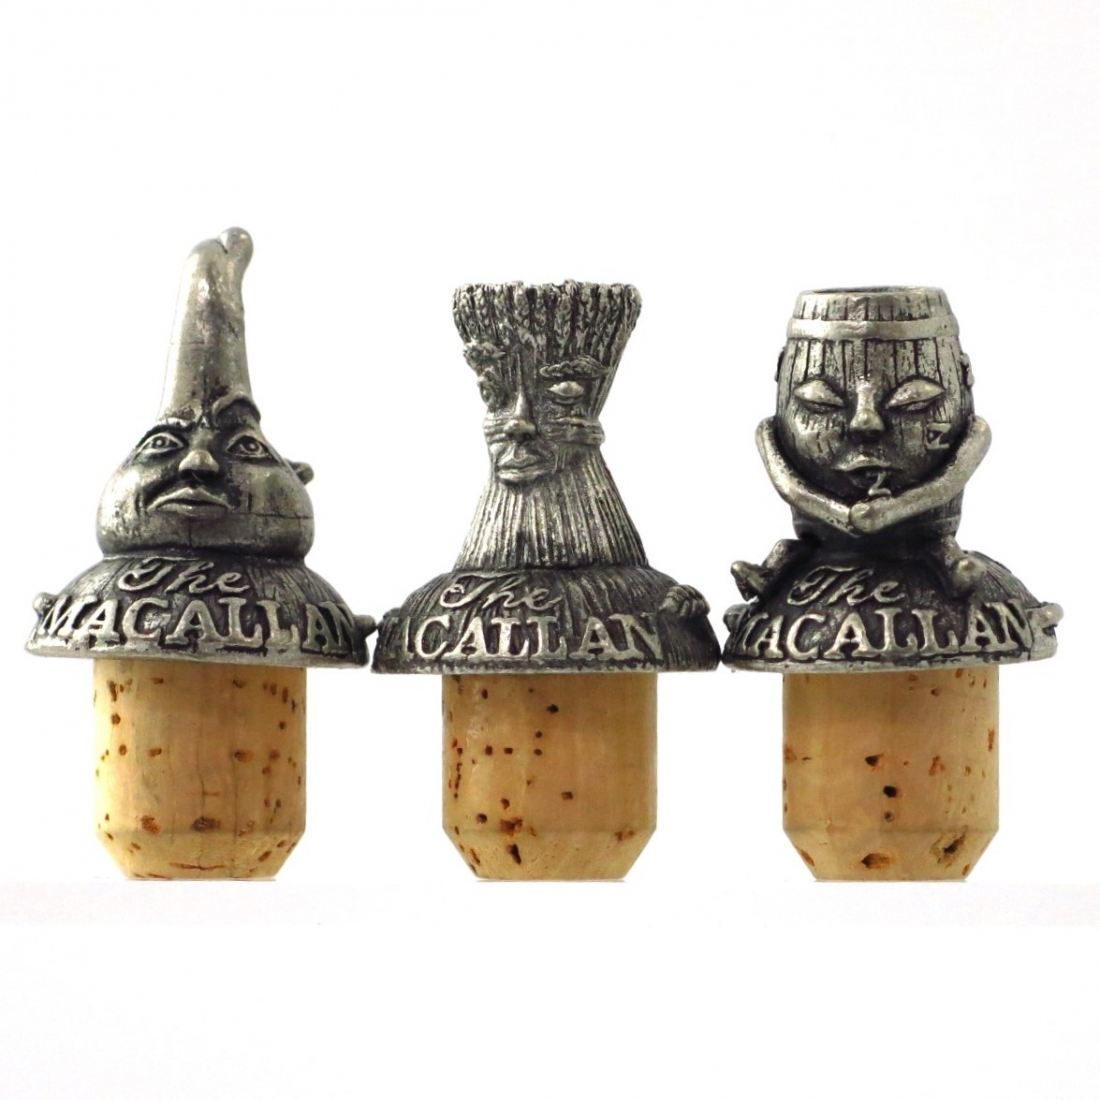 Macallan Pewter Stoppers x 3